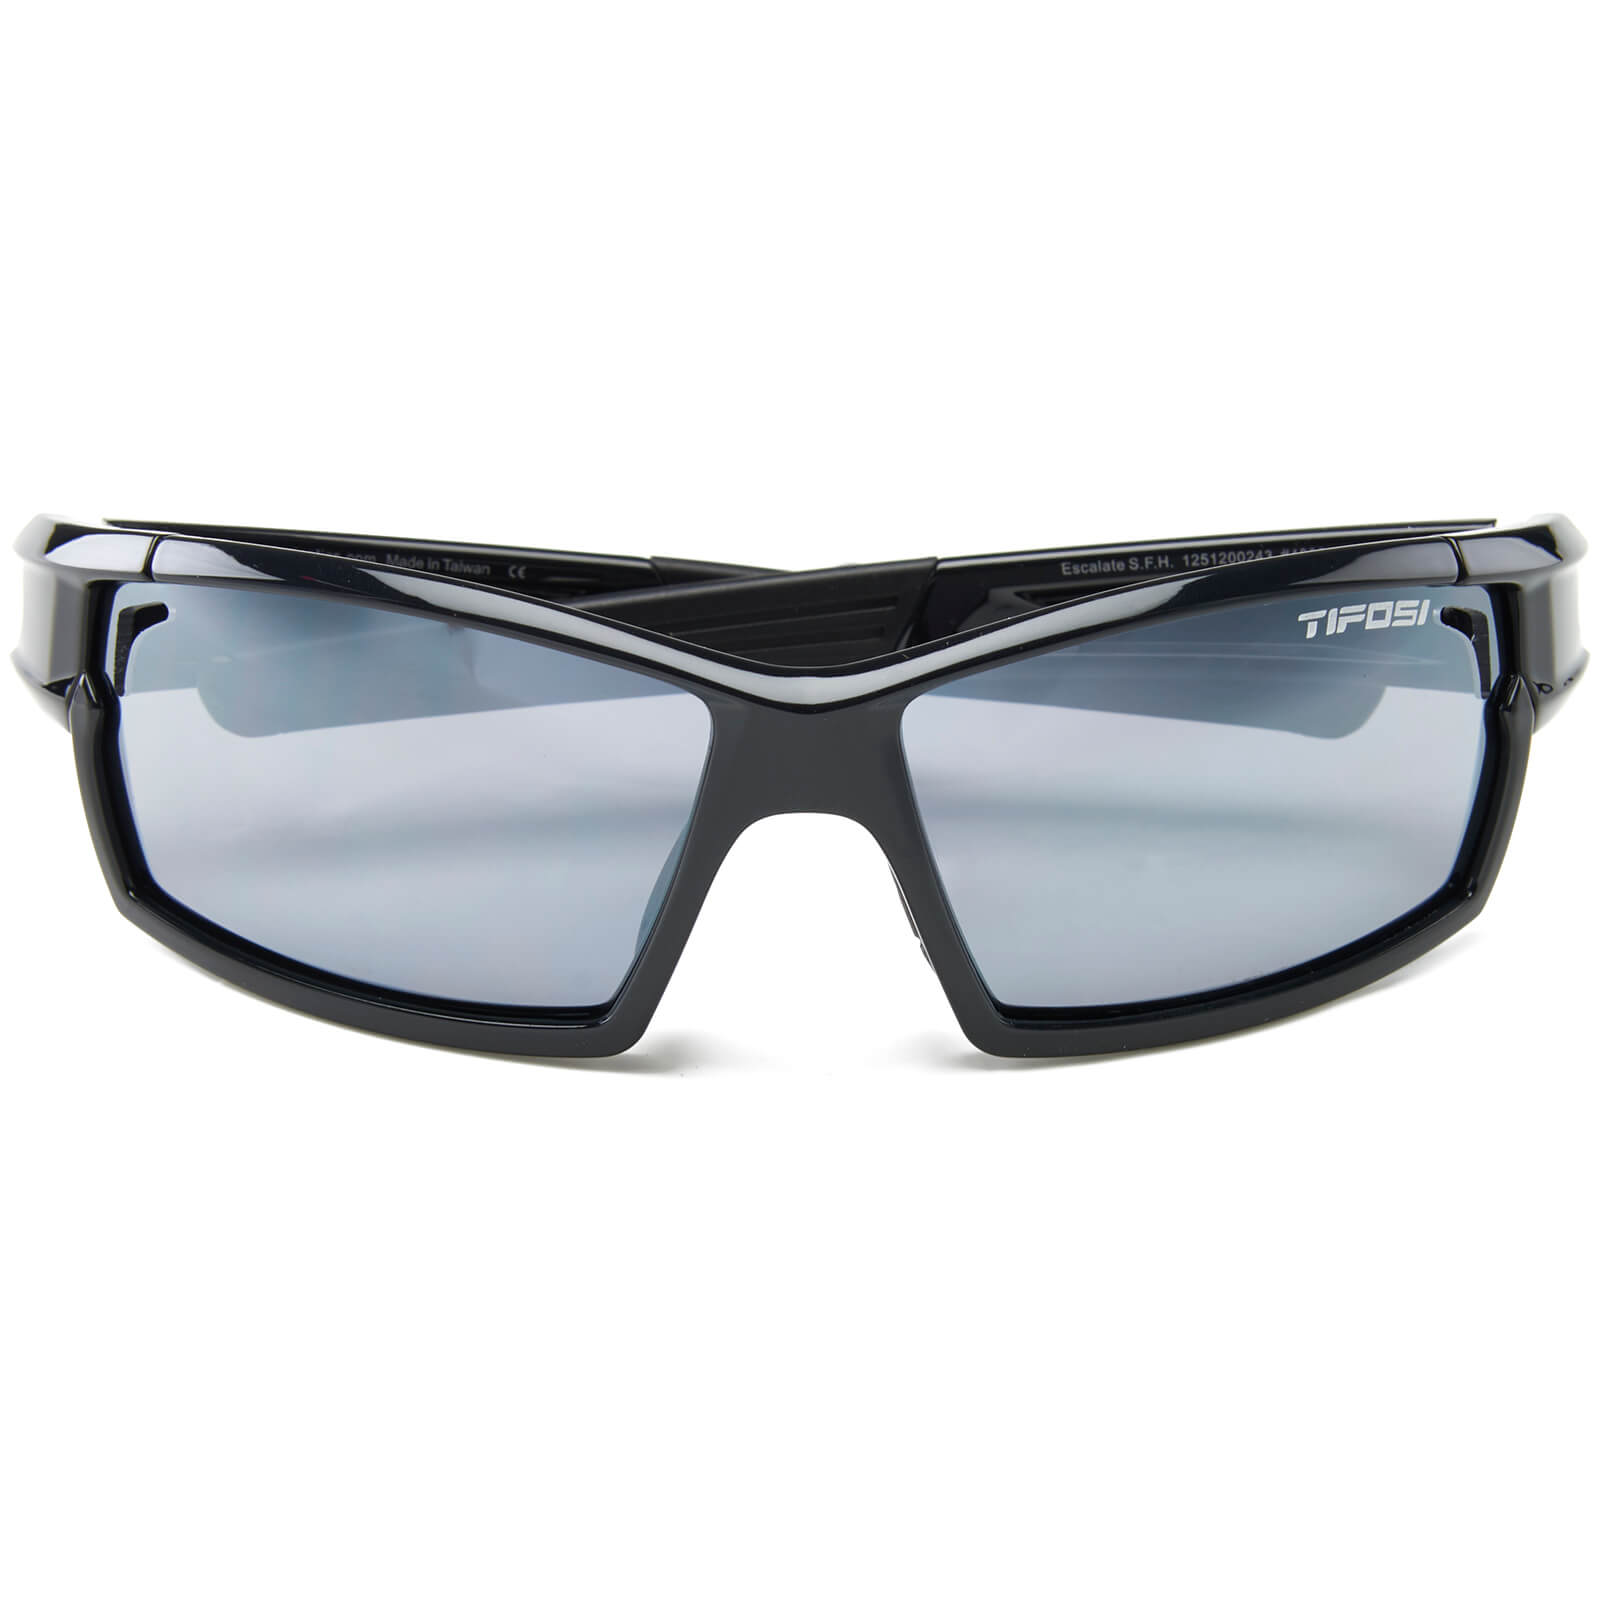 Tifosi Pro Escalate Shield & Full Sunglasses - Gloss Black/Smoke